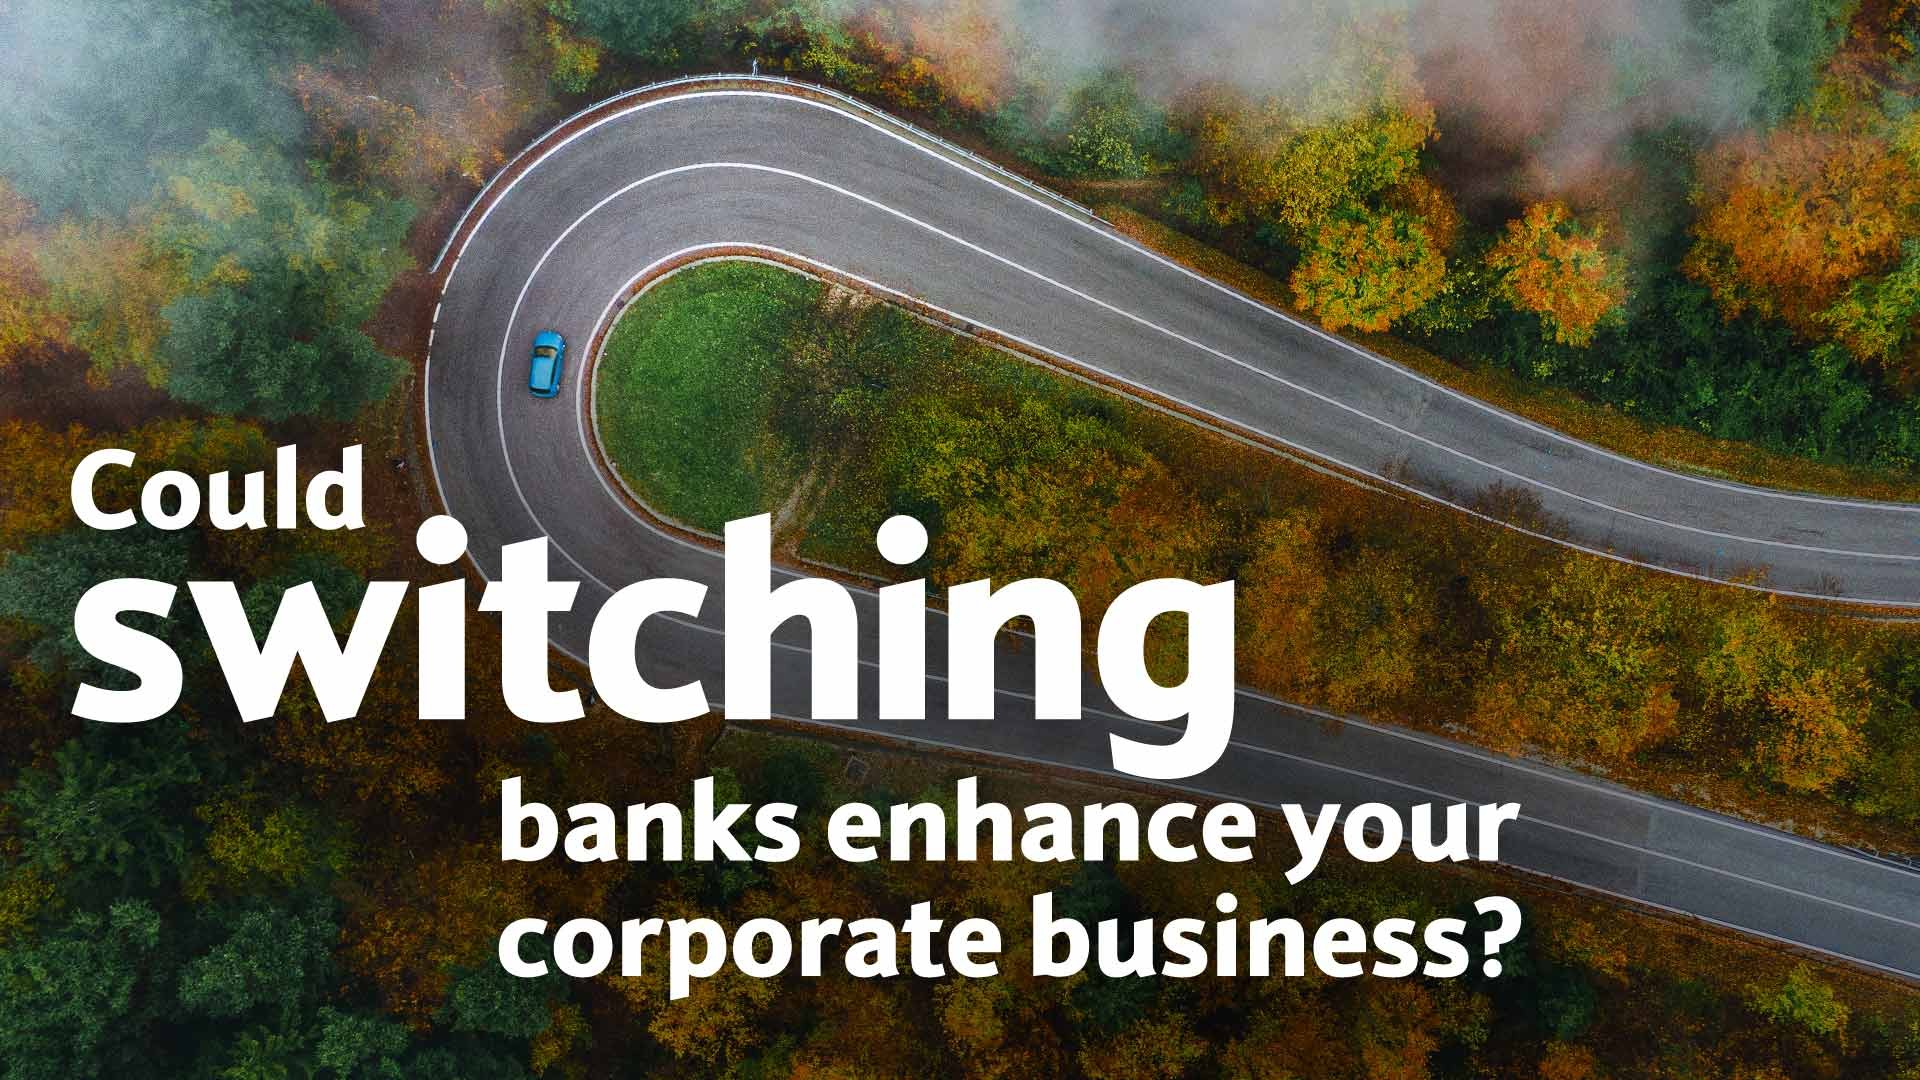 Could switching banks enhance your corporate business?